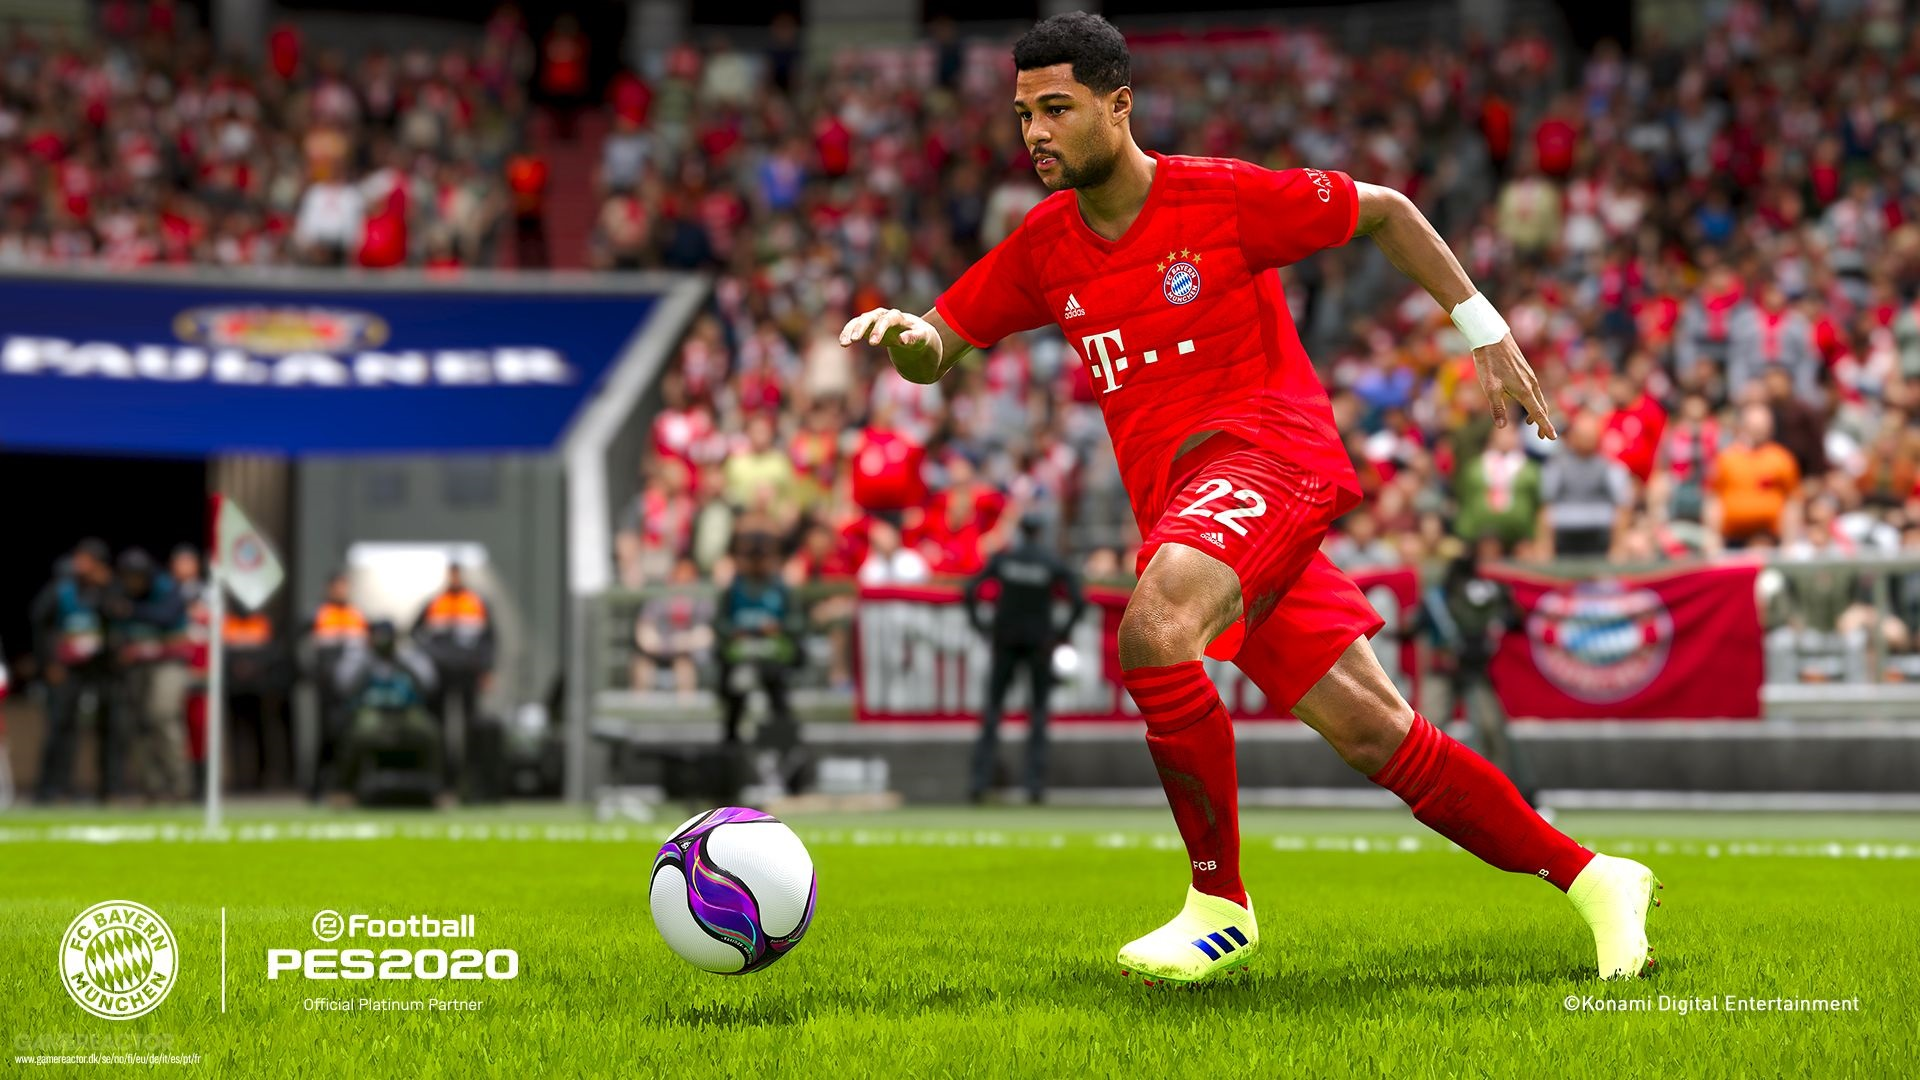 eFootball PES 2020; screenshot: Gnarby